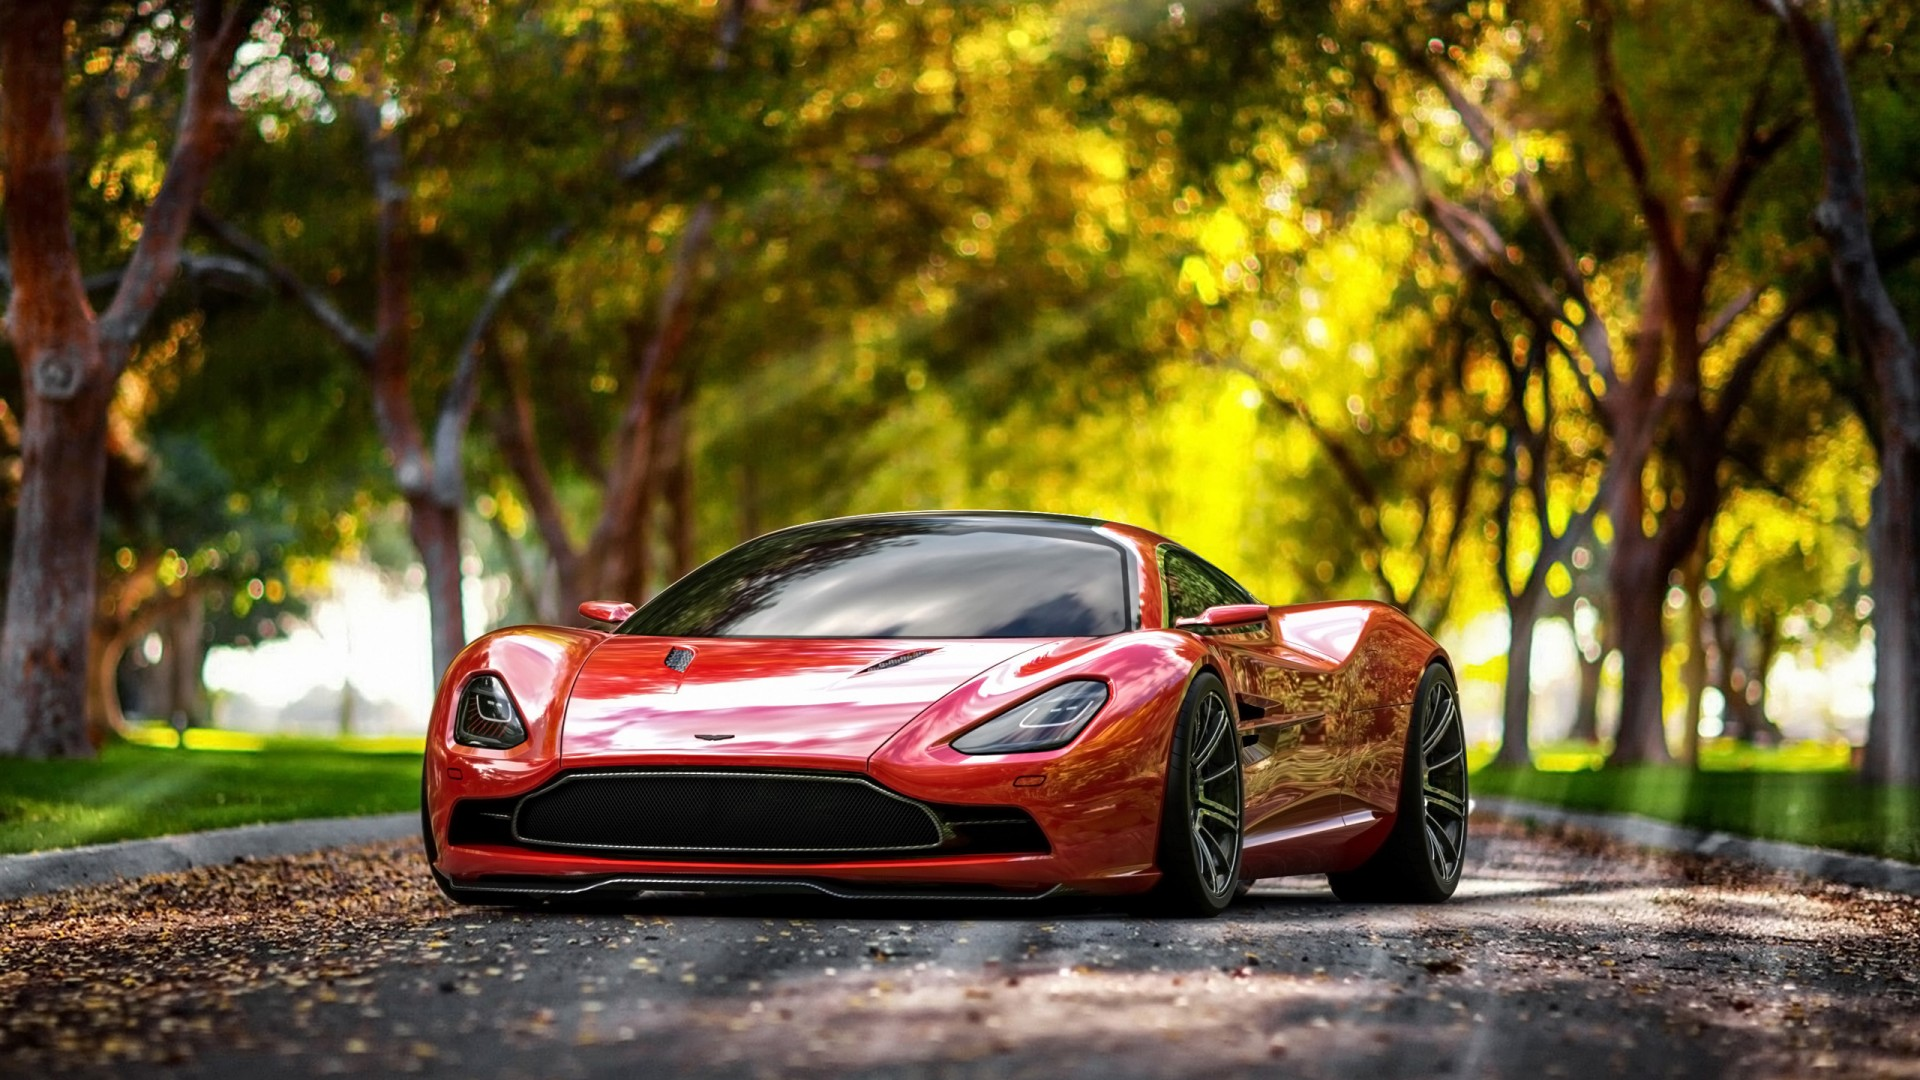 Abstract Hd Wallpapers For Iphone X 2013 Aston Martin Dbc Concept Wallpapers Hd Wallpapers